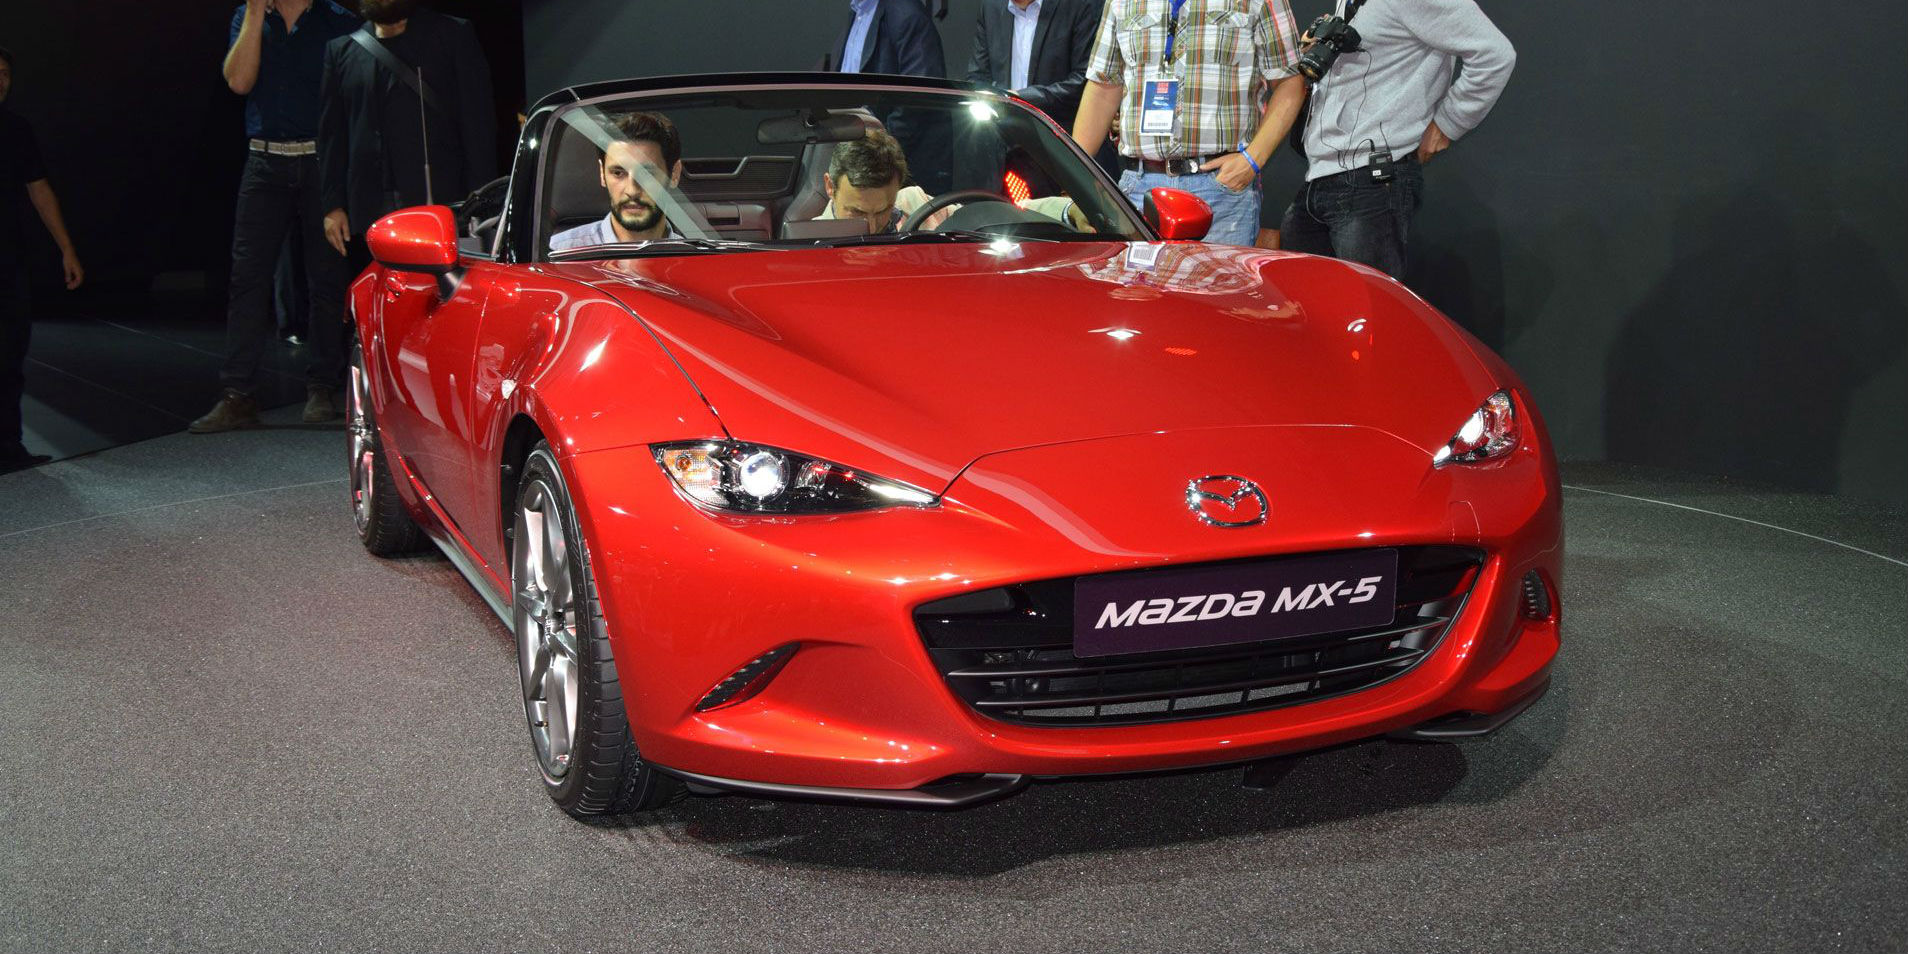 New 2015 Mazda MX 5 cover